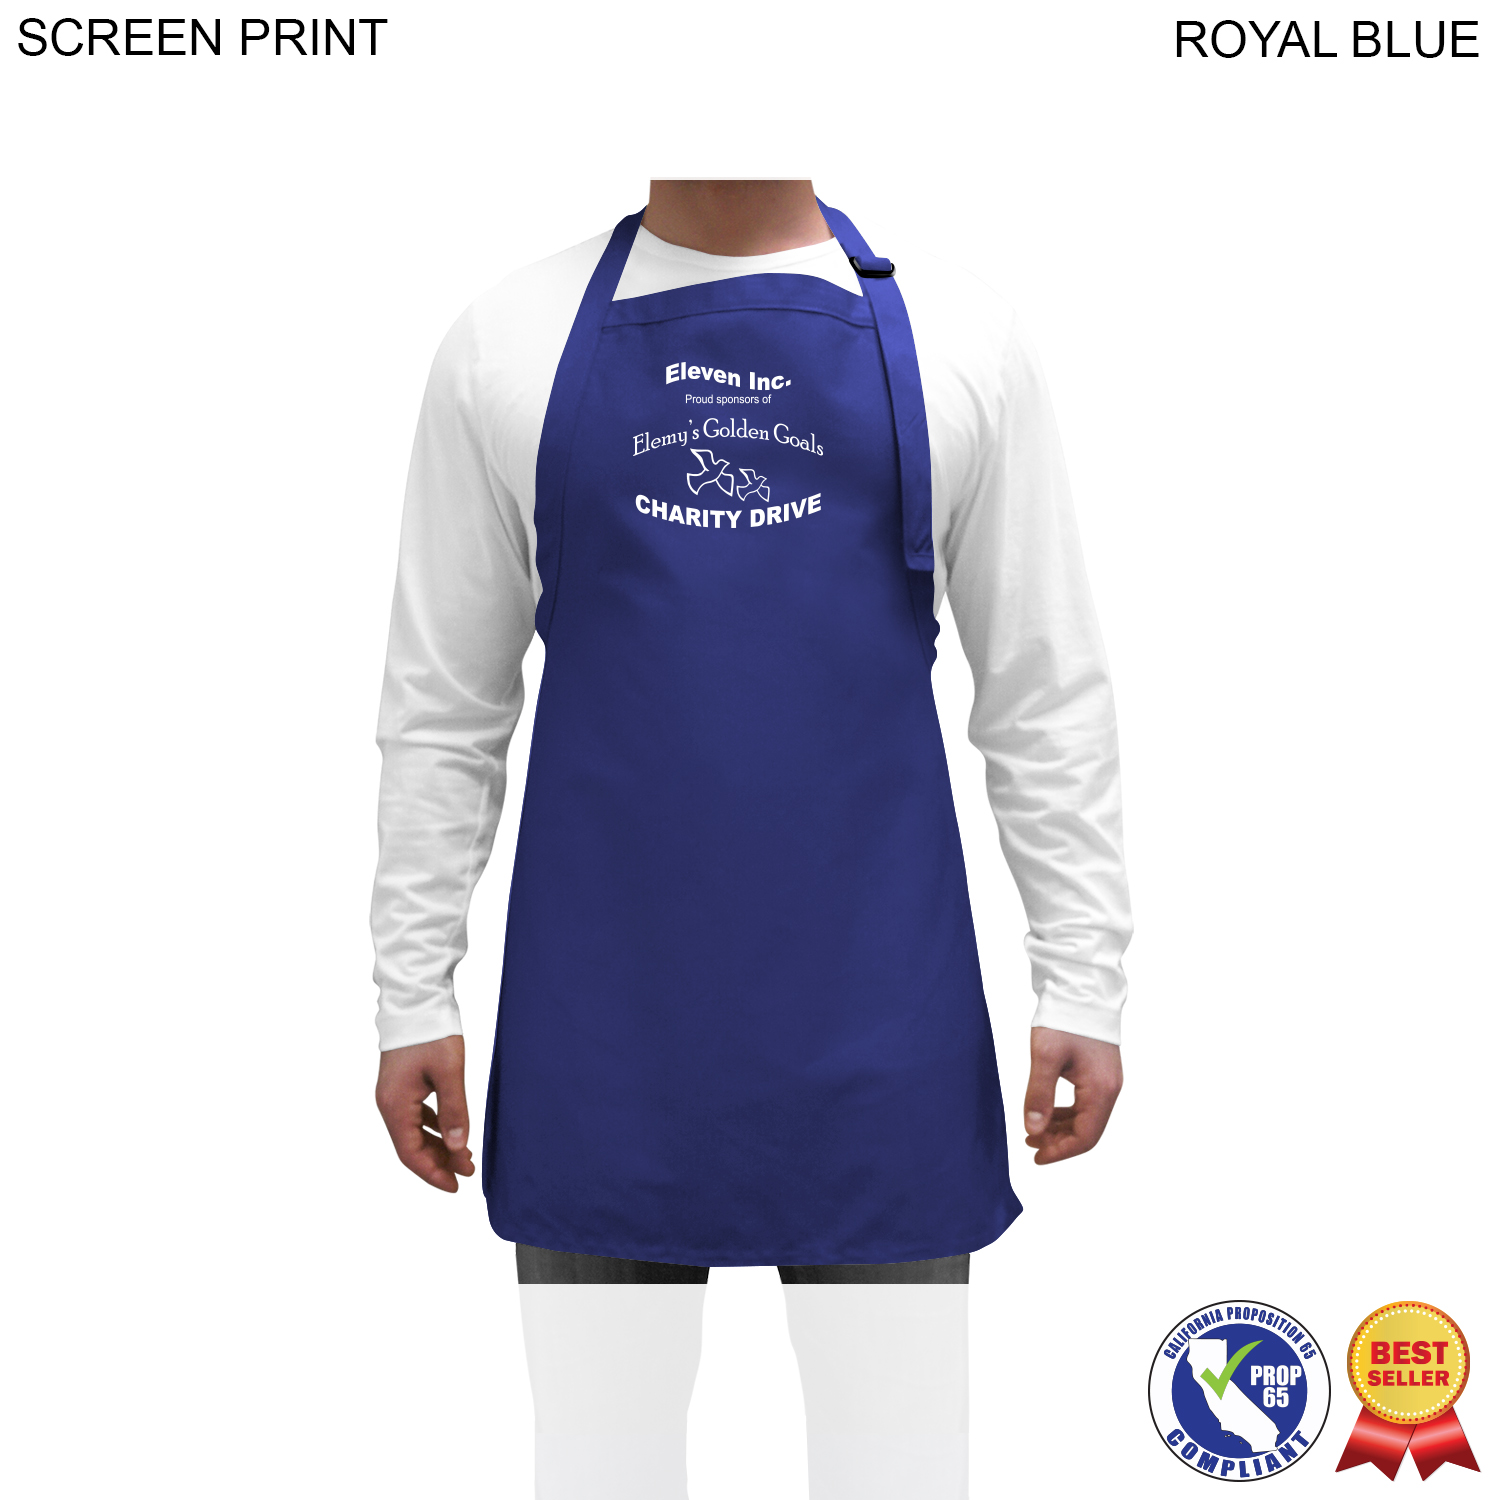 Twill Imported Bib Apron, 25x28,  PR593, 1 Colour Imprint